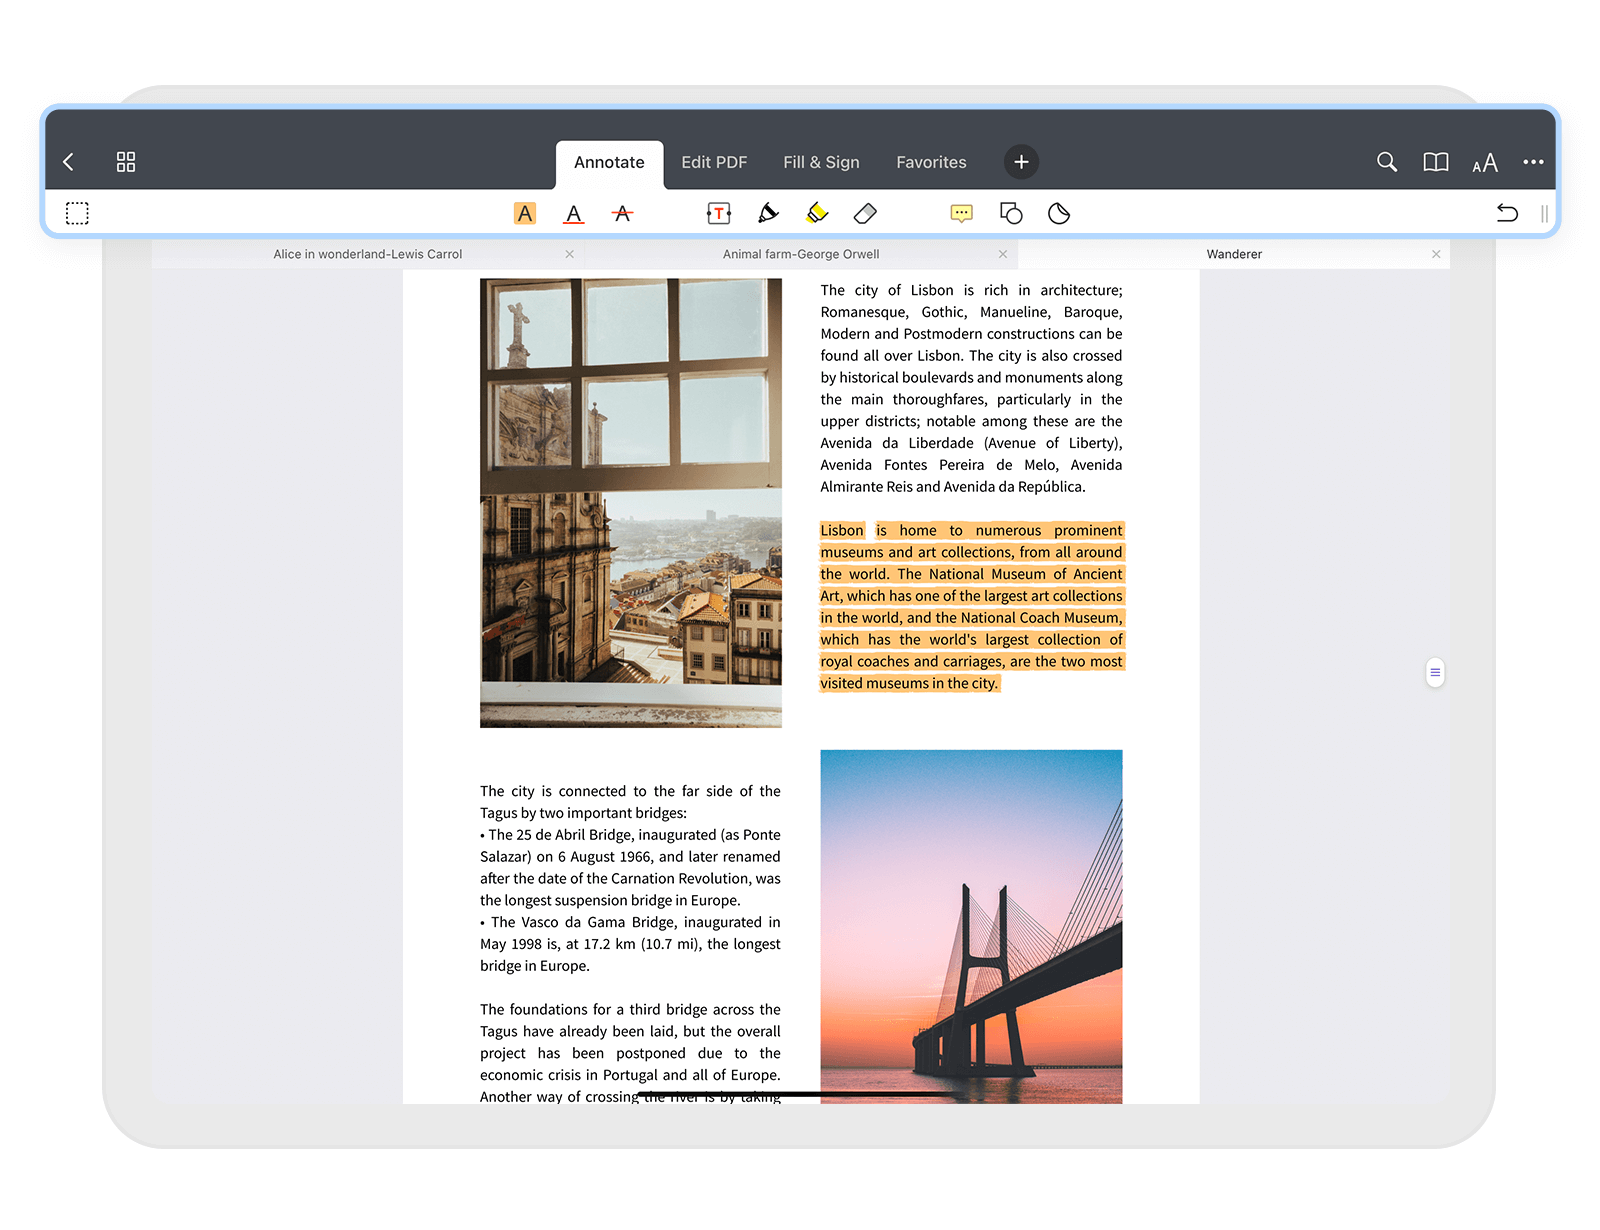 How to annotate books on iPhone and iPad